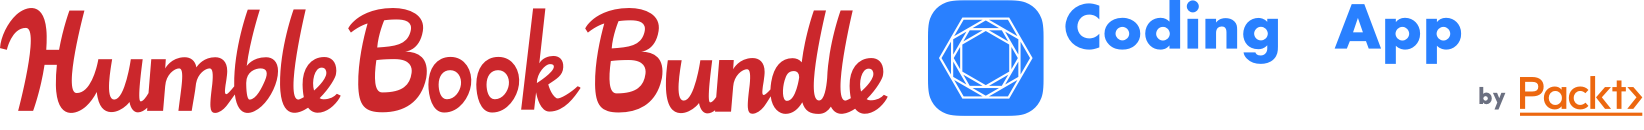 The Humble Book Bundle: Coding & App Development by Packt